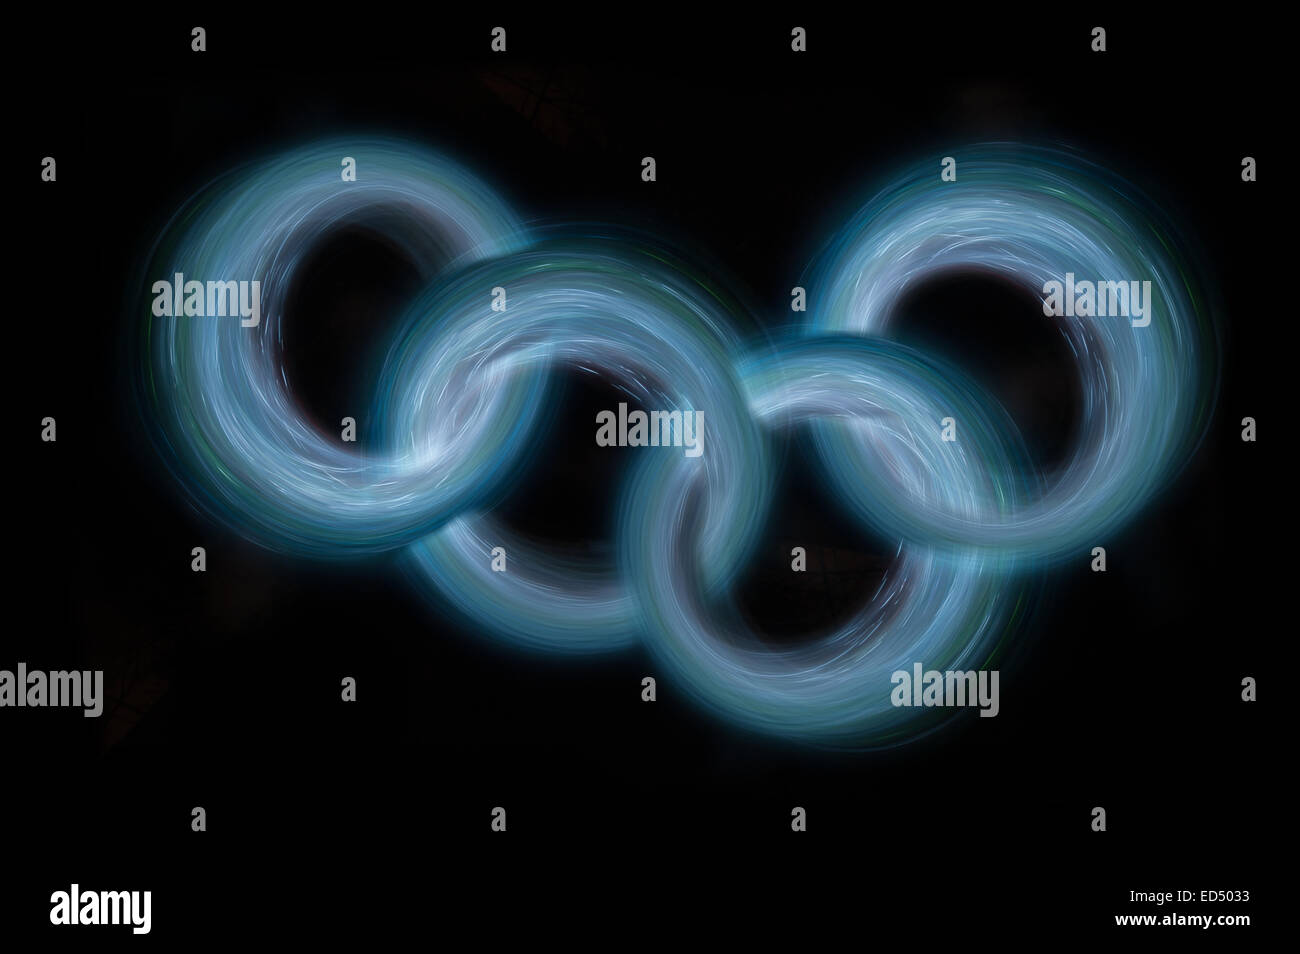 swirling spinning motion and trails traces of moving lights creating patterns vortice joined light rings circle - Stock Image